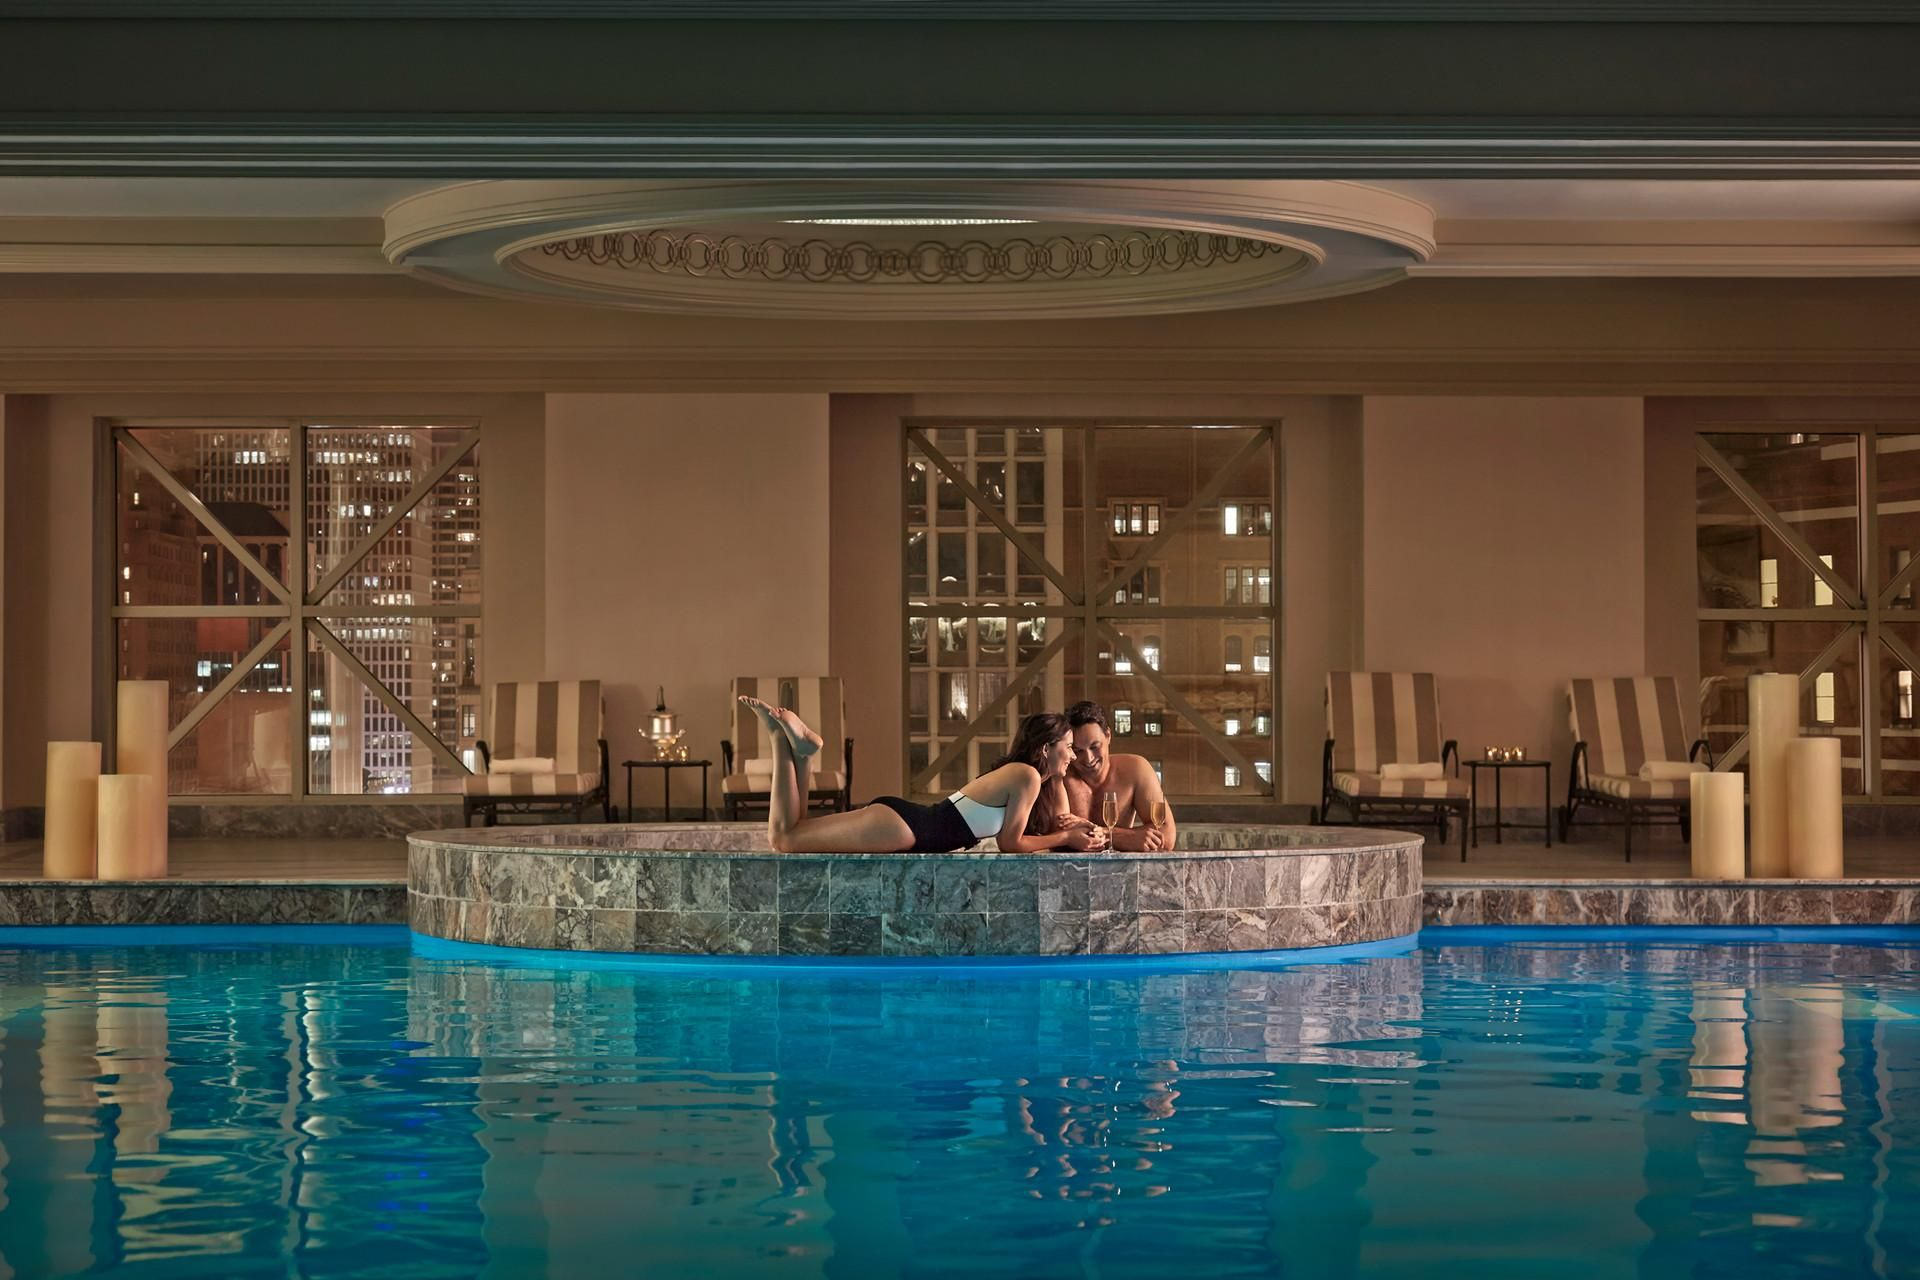 For An Unforgettable Experience Skylight Swim Transforms The Spa At Four Seasons Into An Exclusive Sanctuary Of Sereni Chicago Hotels Chicago Resorts Spa Trip